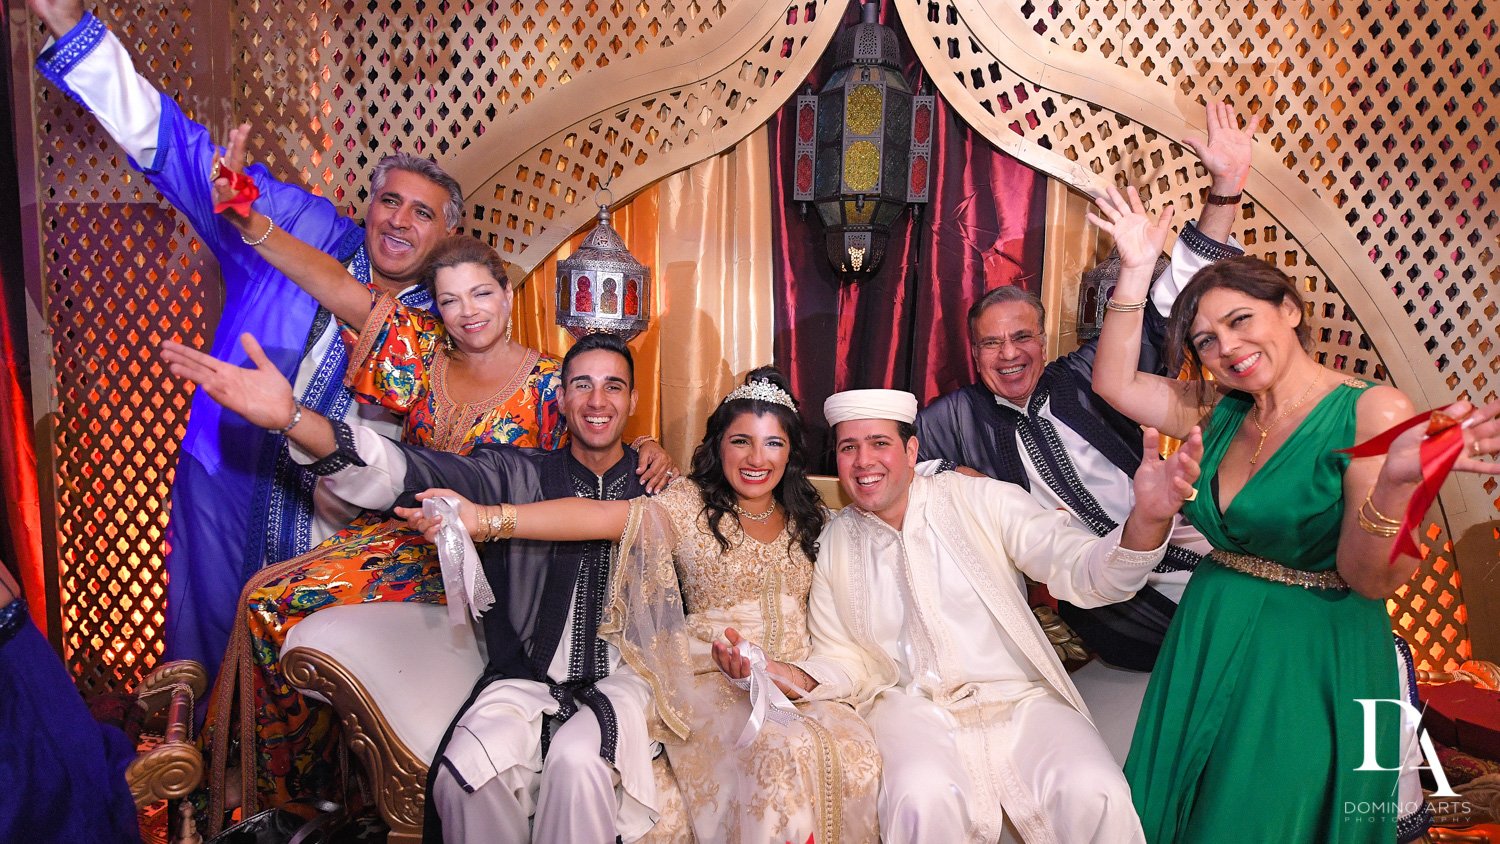 family portrait at Authentic Morrocan Jewish Henna Party by Domino Arts Photography